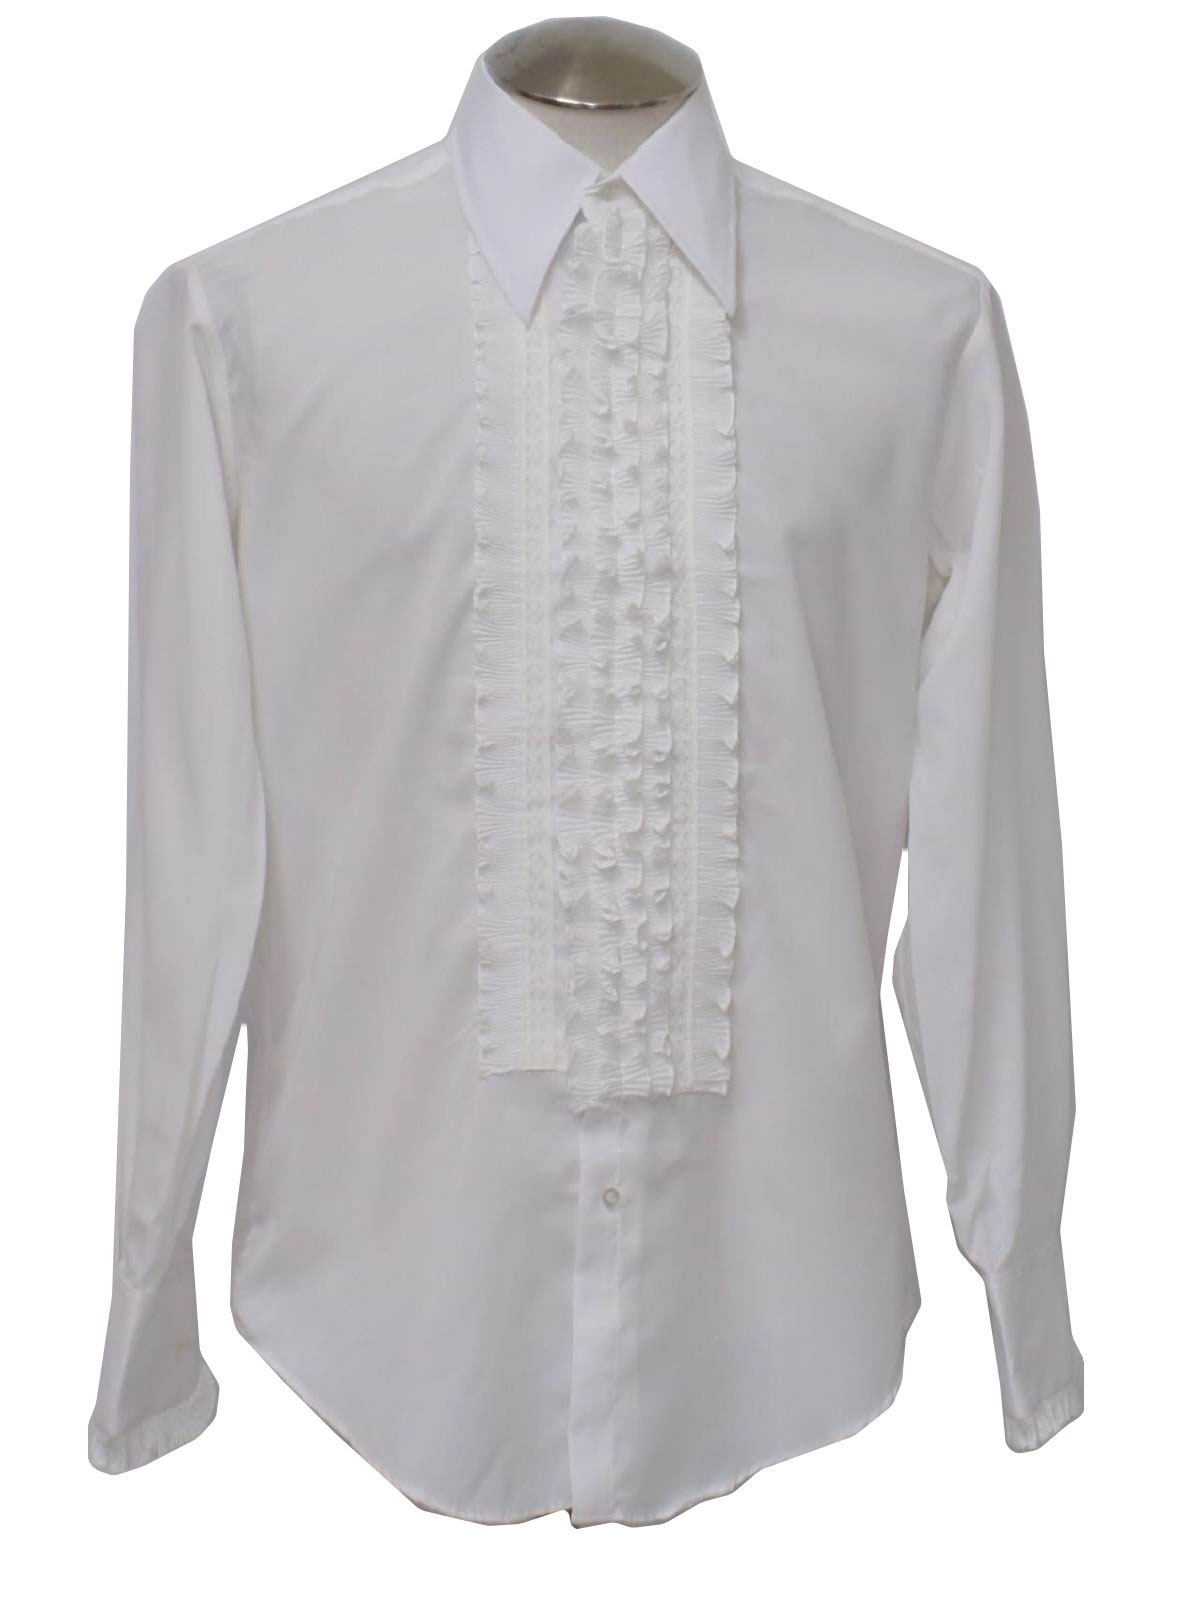 80da6d89ee73a Vintage 1970 s Shirt  70s -After Six- Mens slightly sheer white ...